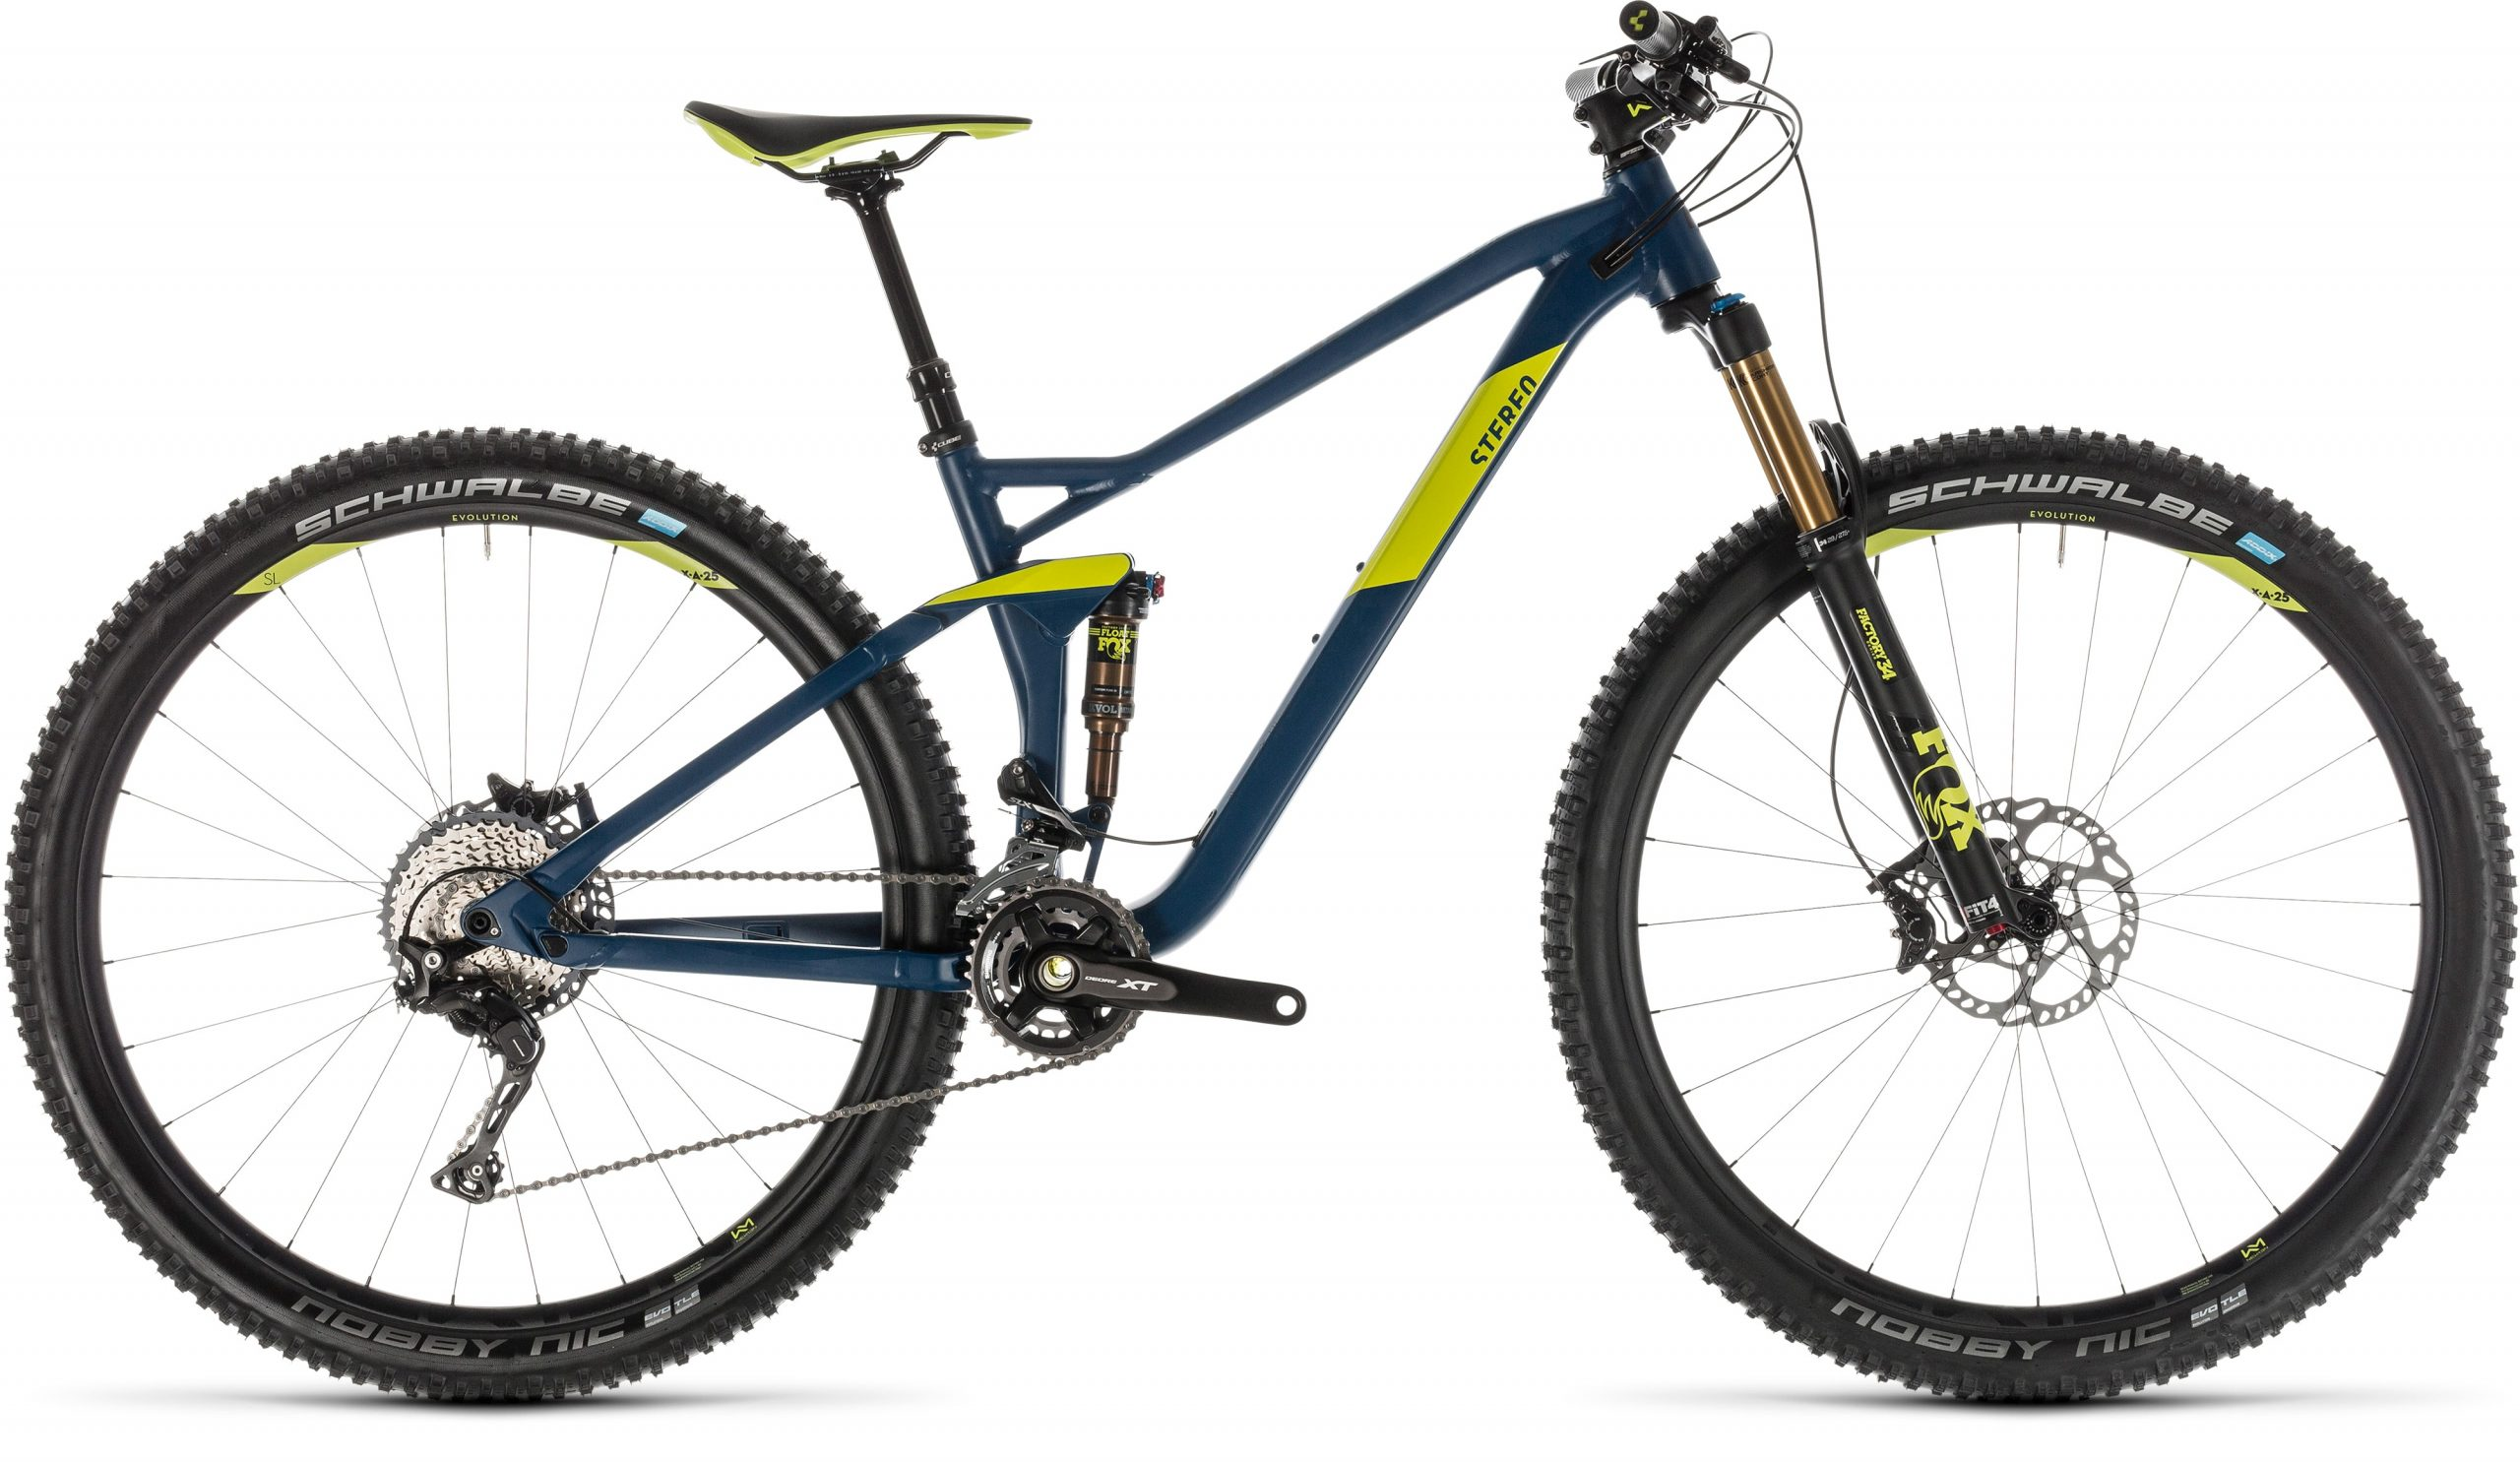 Cube Stereo 120 SL 29er Full Suspension Mountain Bike 2019